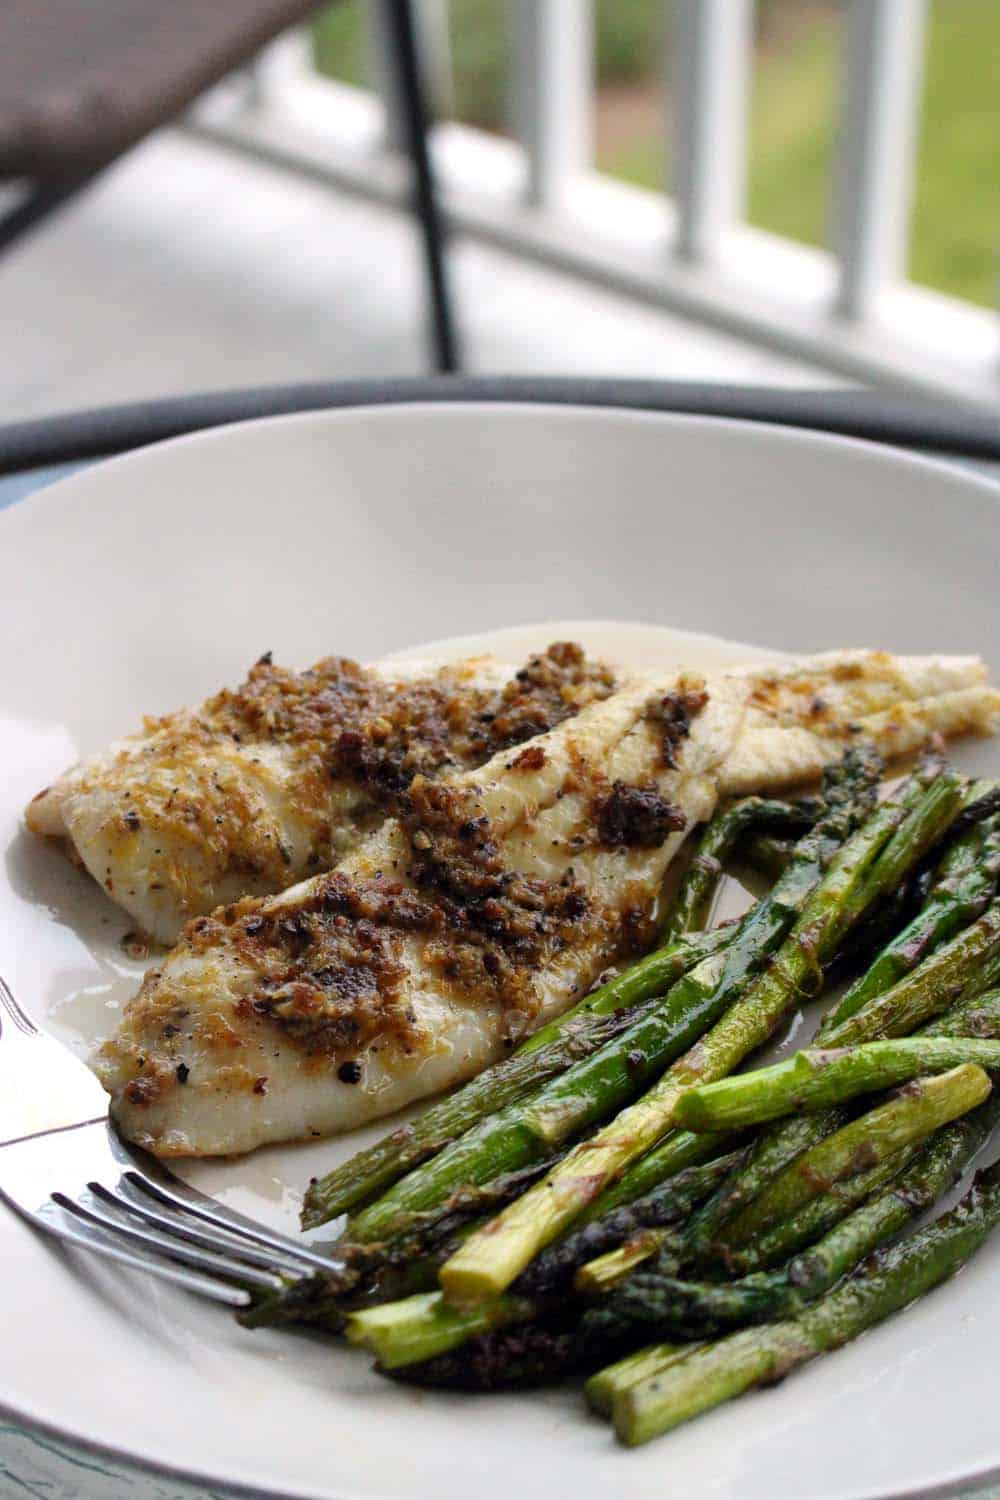 White plate holding browned white fish next to asparagus, on a table on a porch.